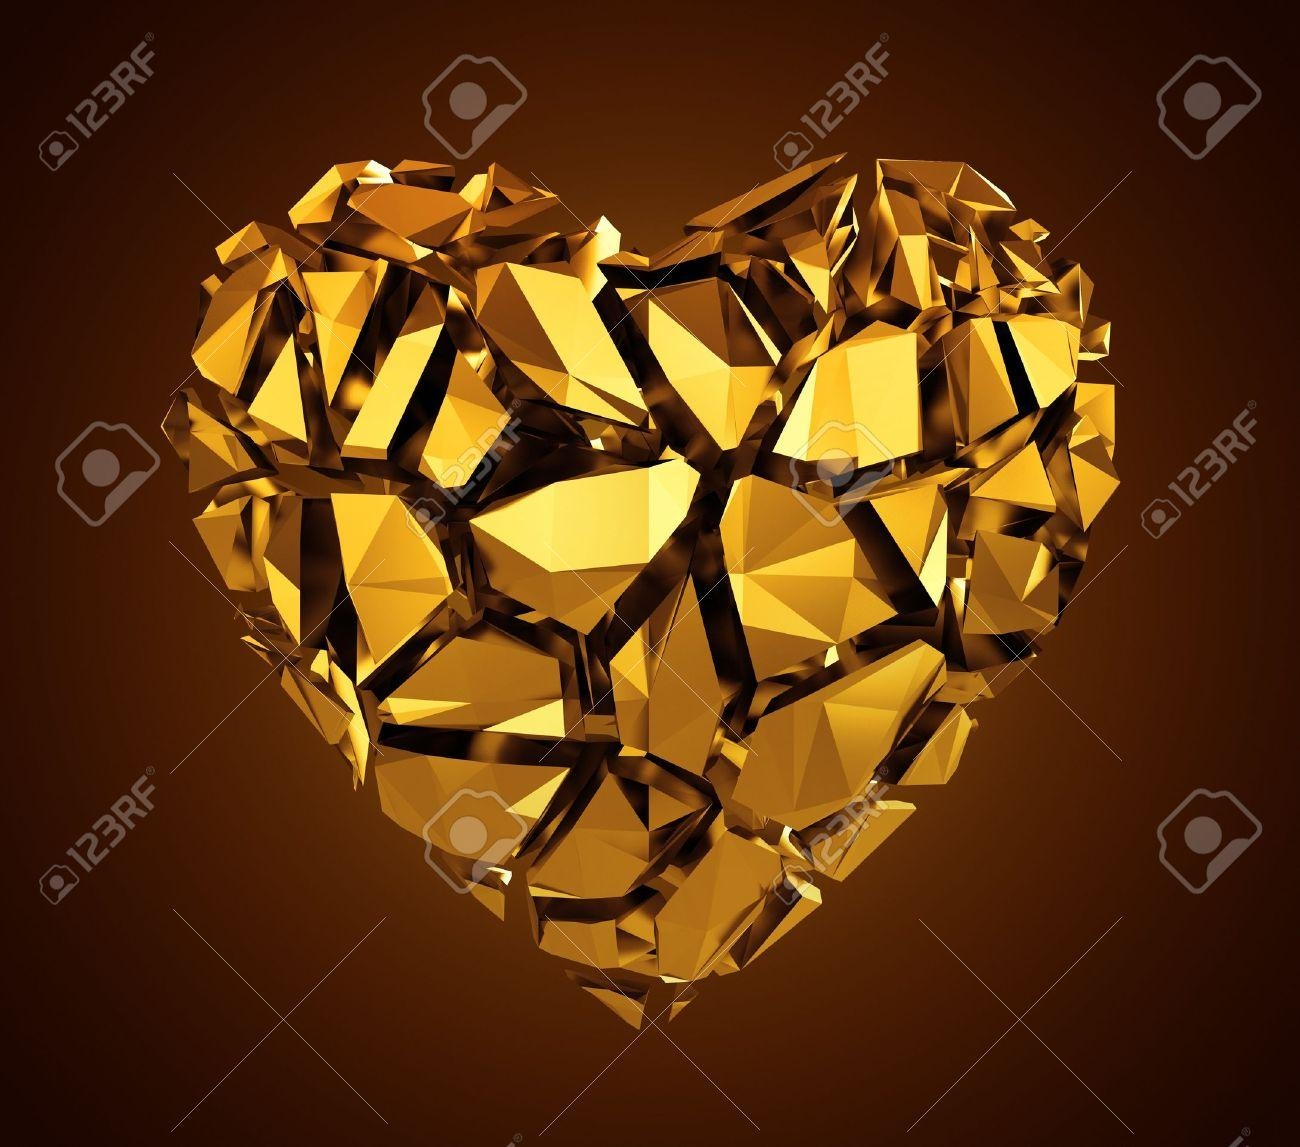 3D Broken Gold Crystal Heart Stock Photo, Picture And Royalty Free Intended For Gold Heart Mirror (Image 2 of 20)